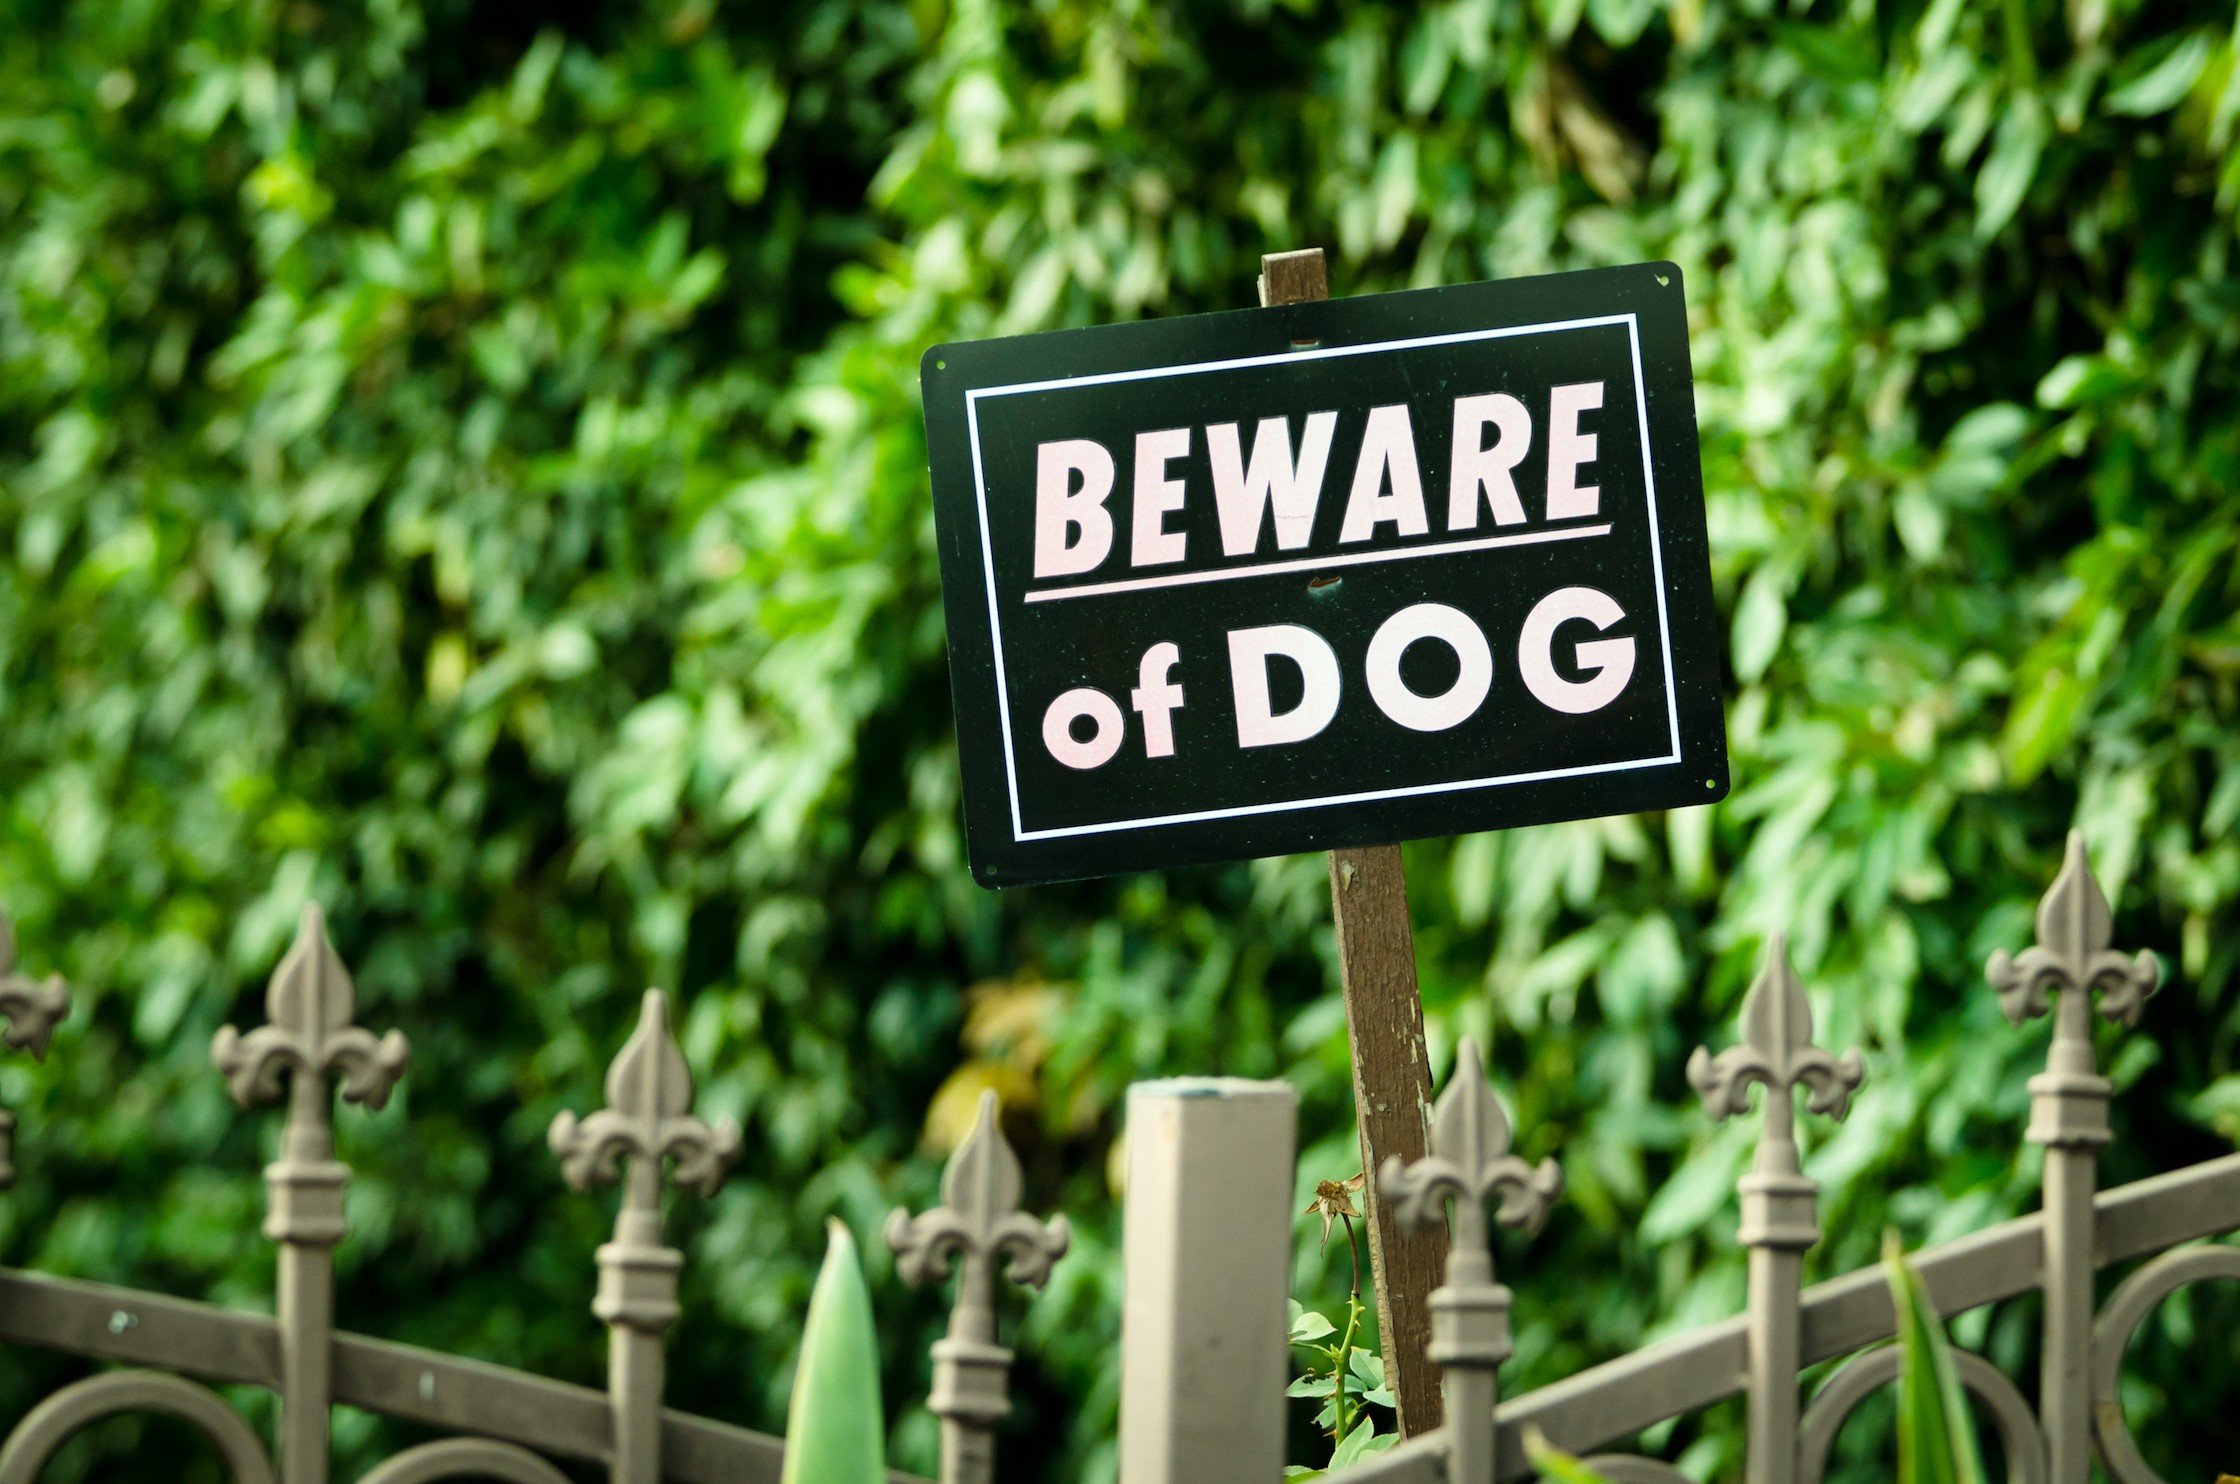 Black beware of dog sign over fence with green background